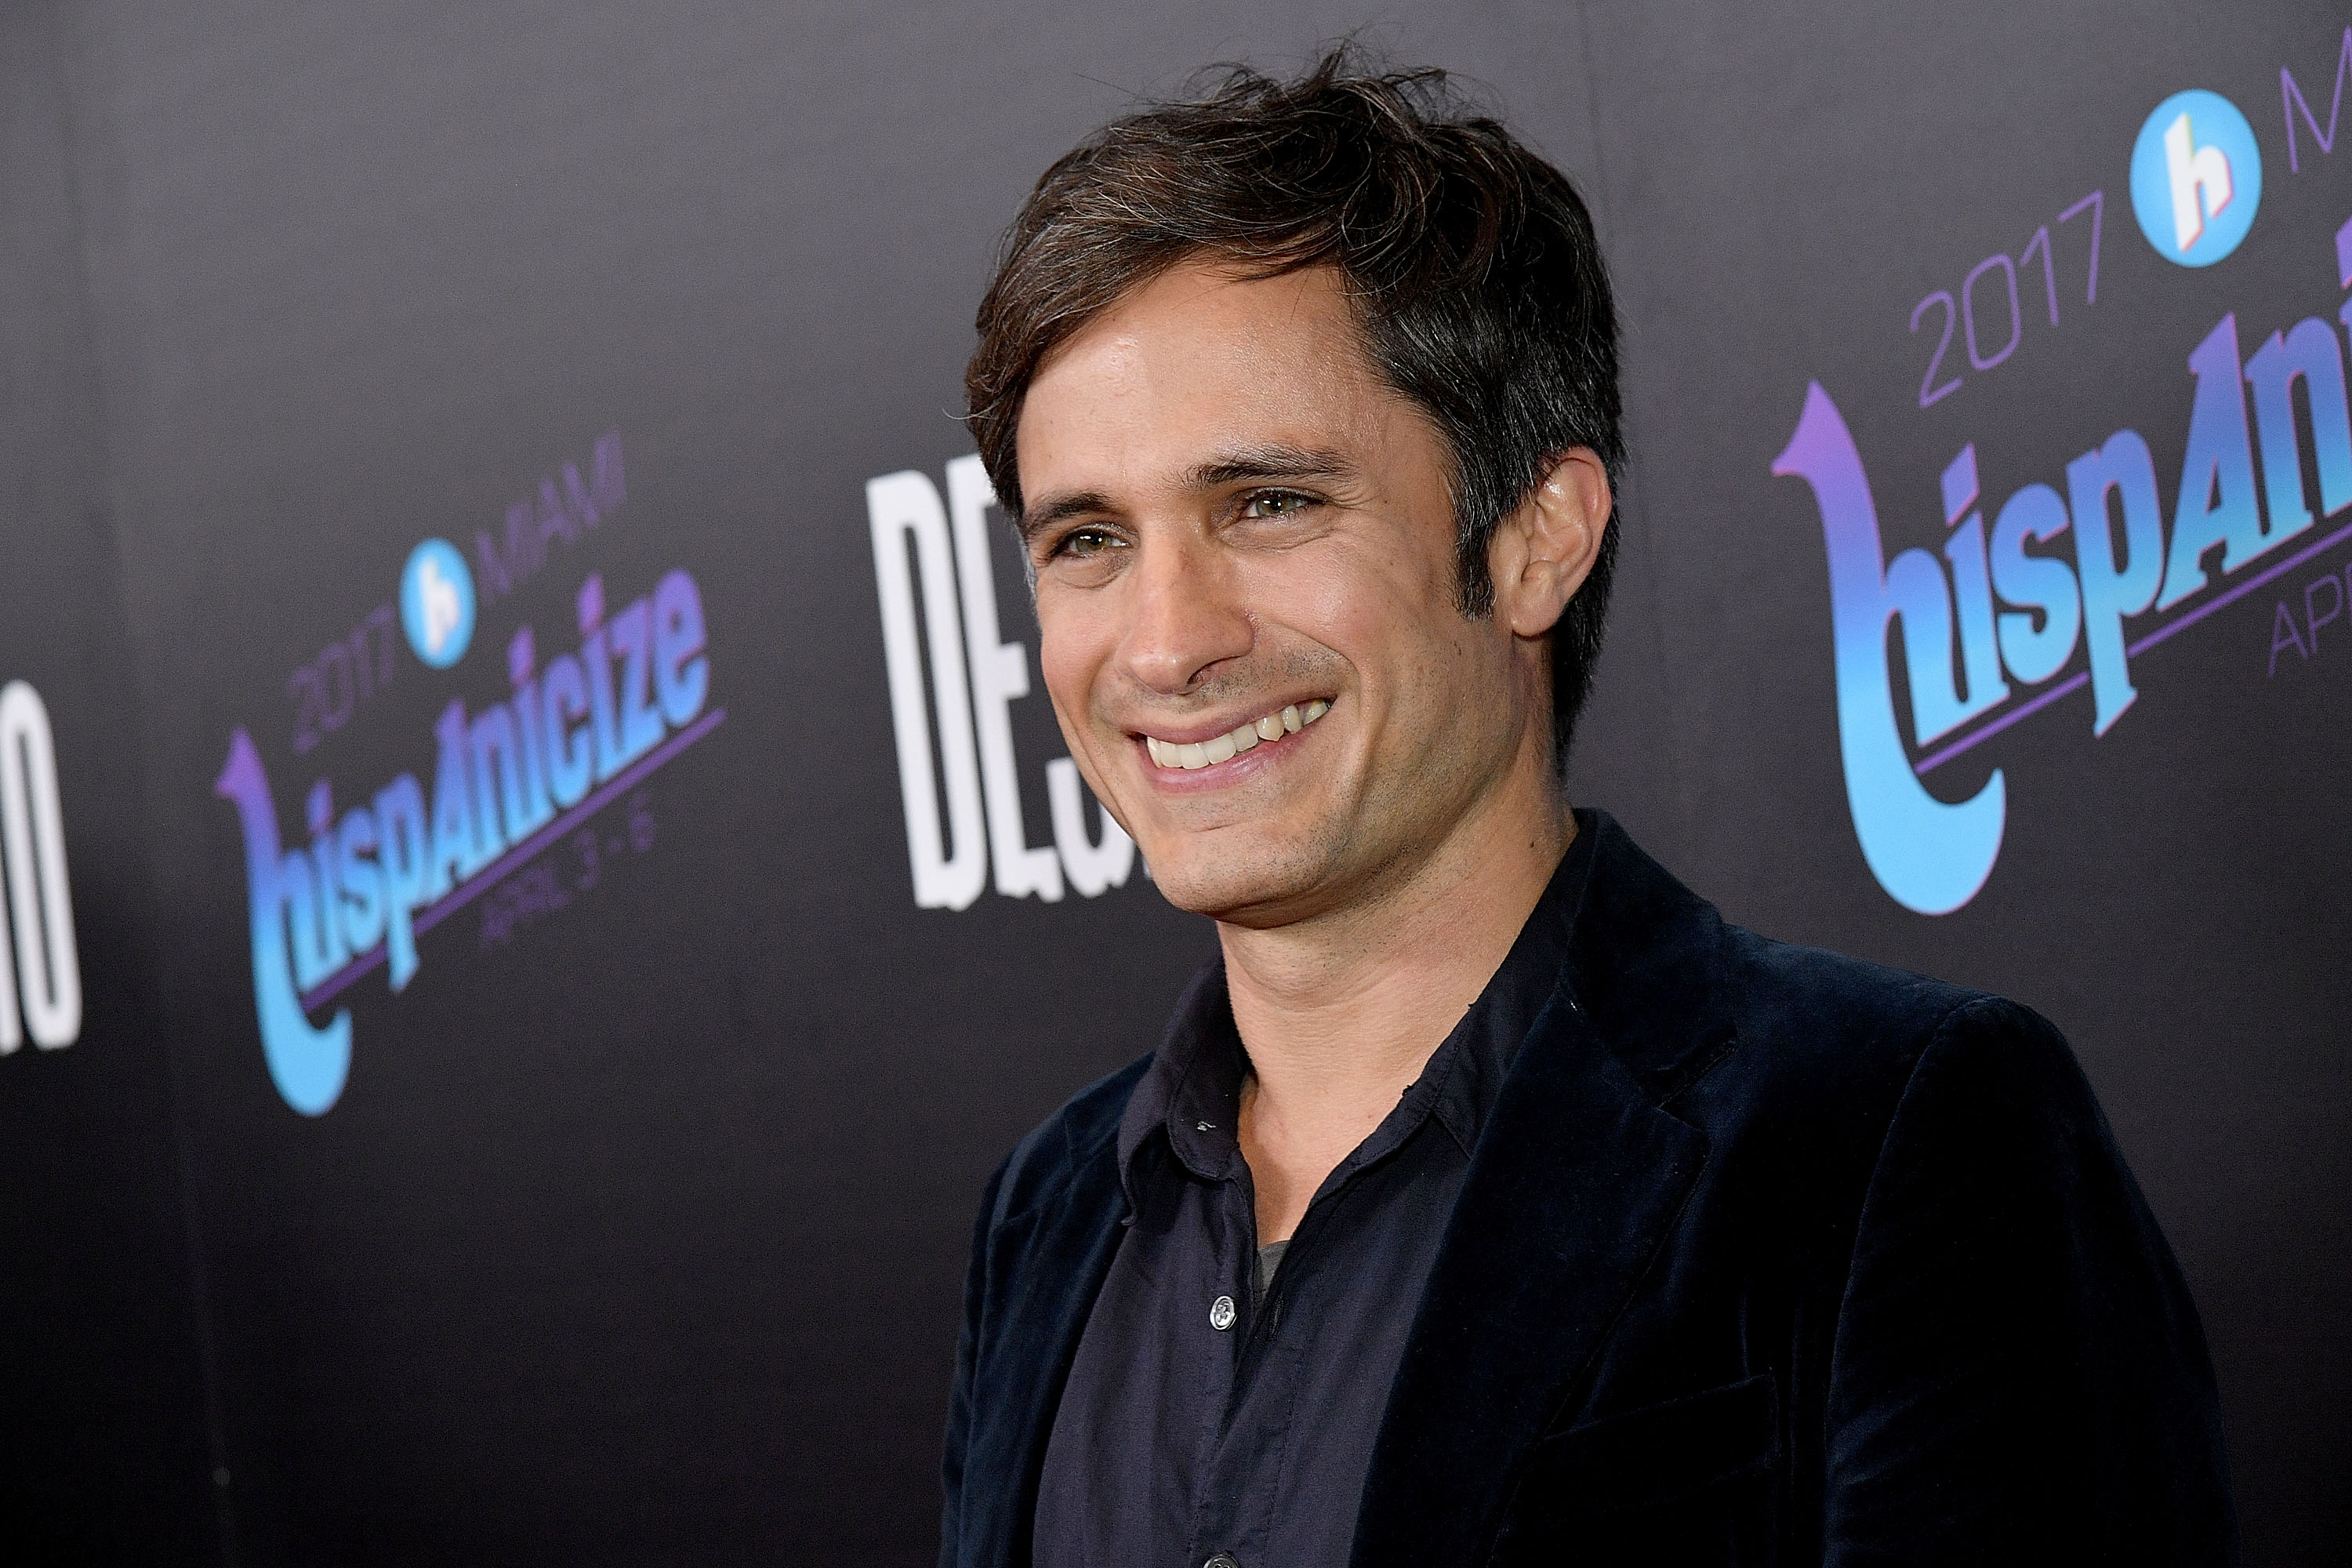 Here's What We Know About Gael Garcia Bernal's Second Feature as a Director